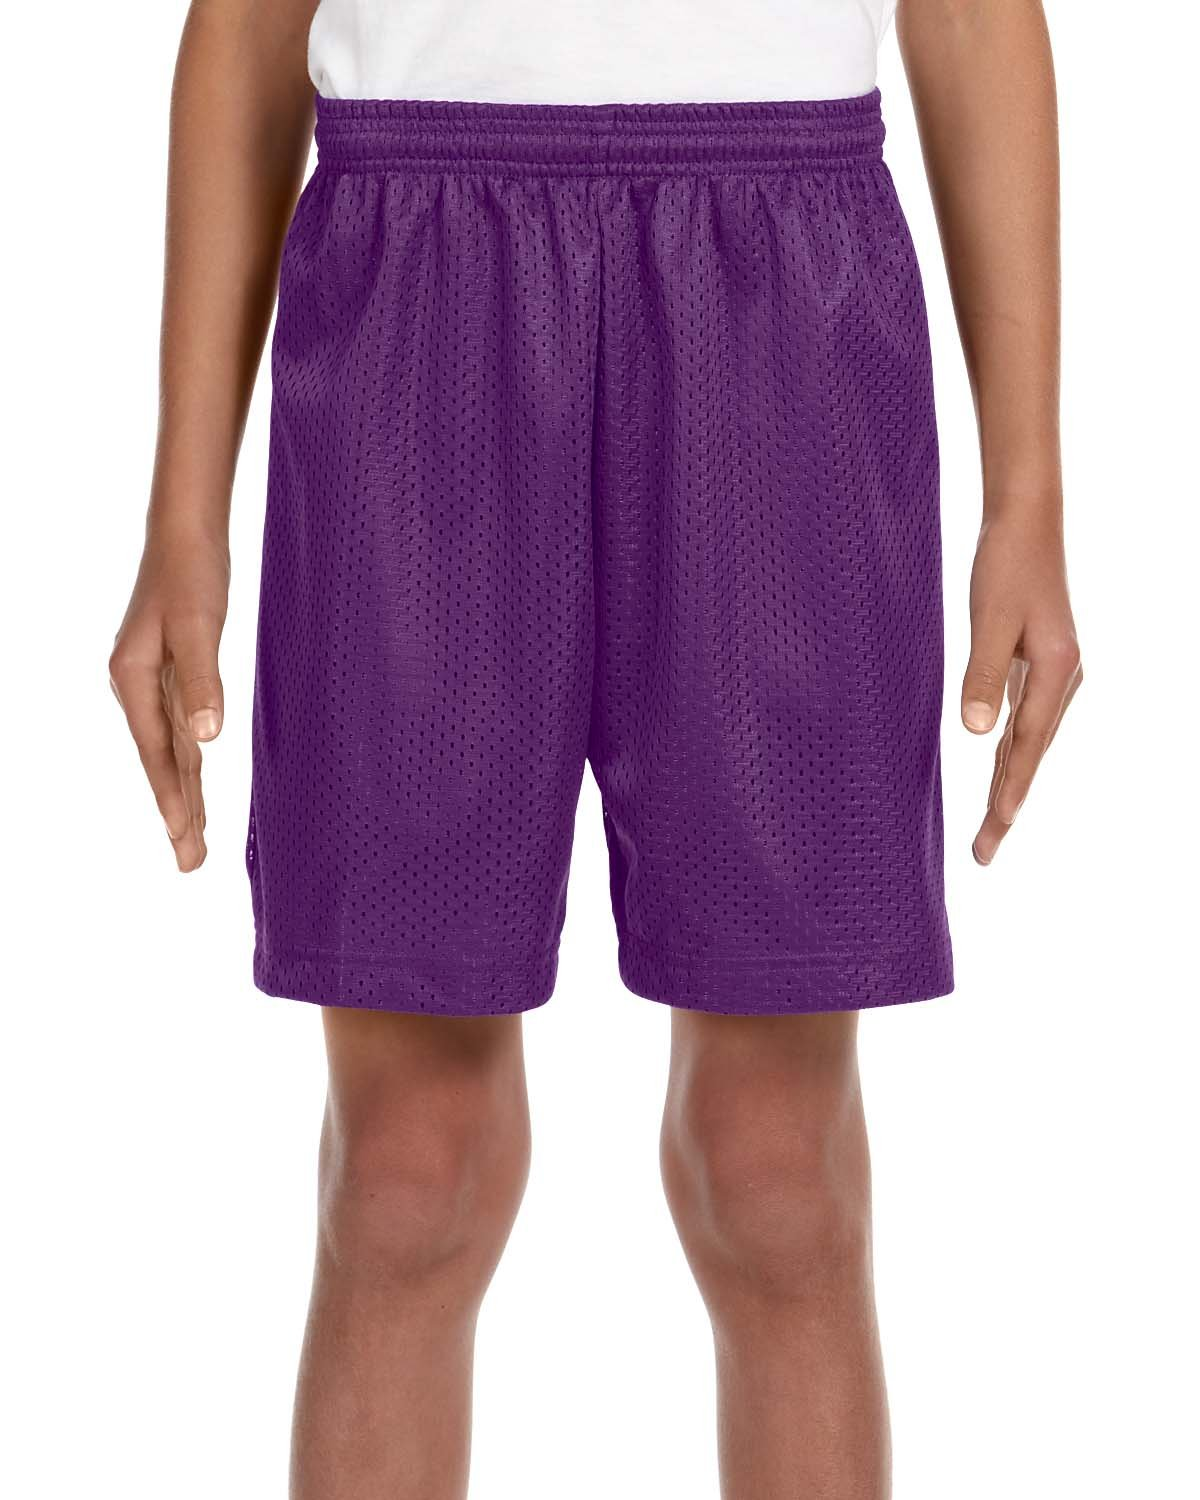 A4 NB5301-PUR Lined Tricot Mesh Shorts, X-Small, Purple